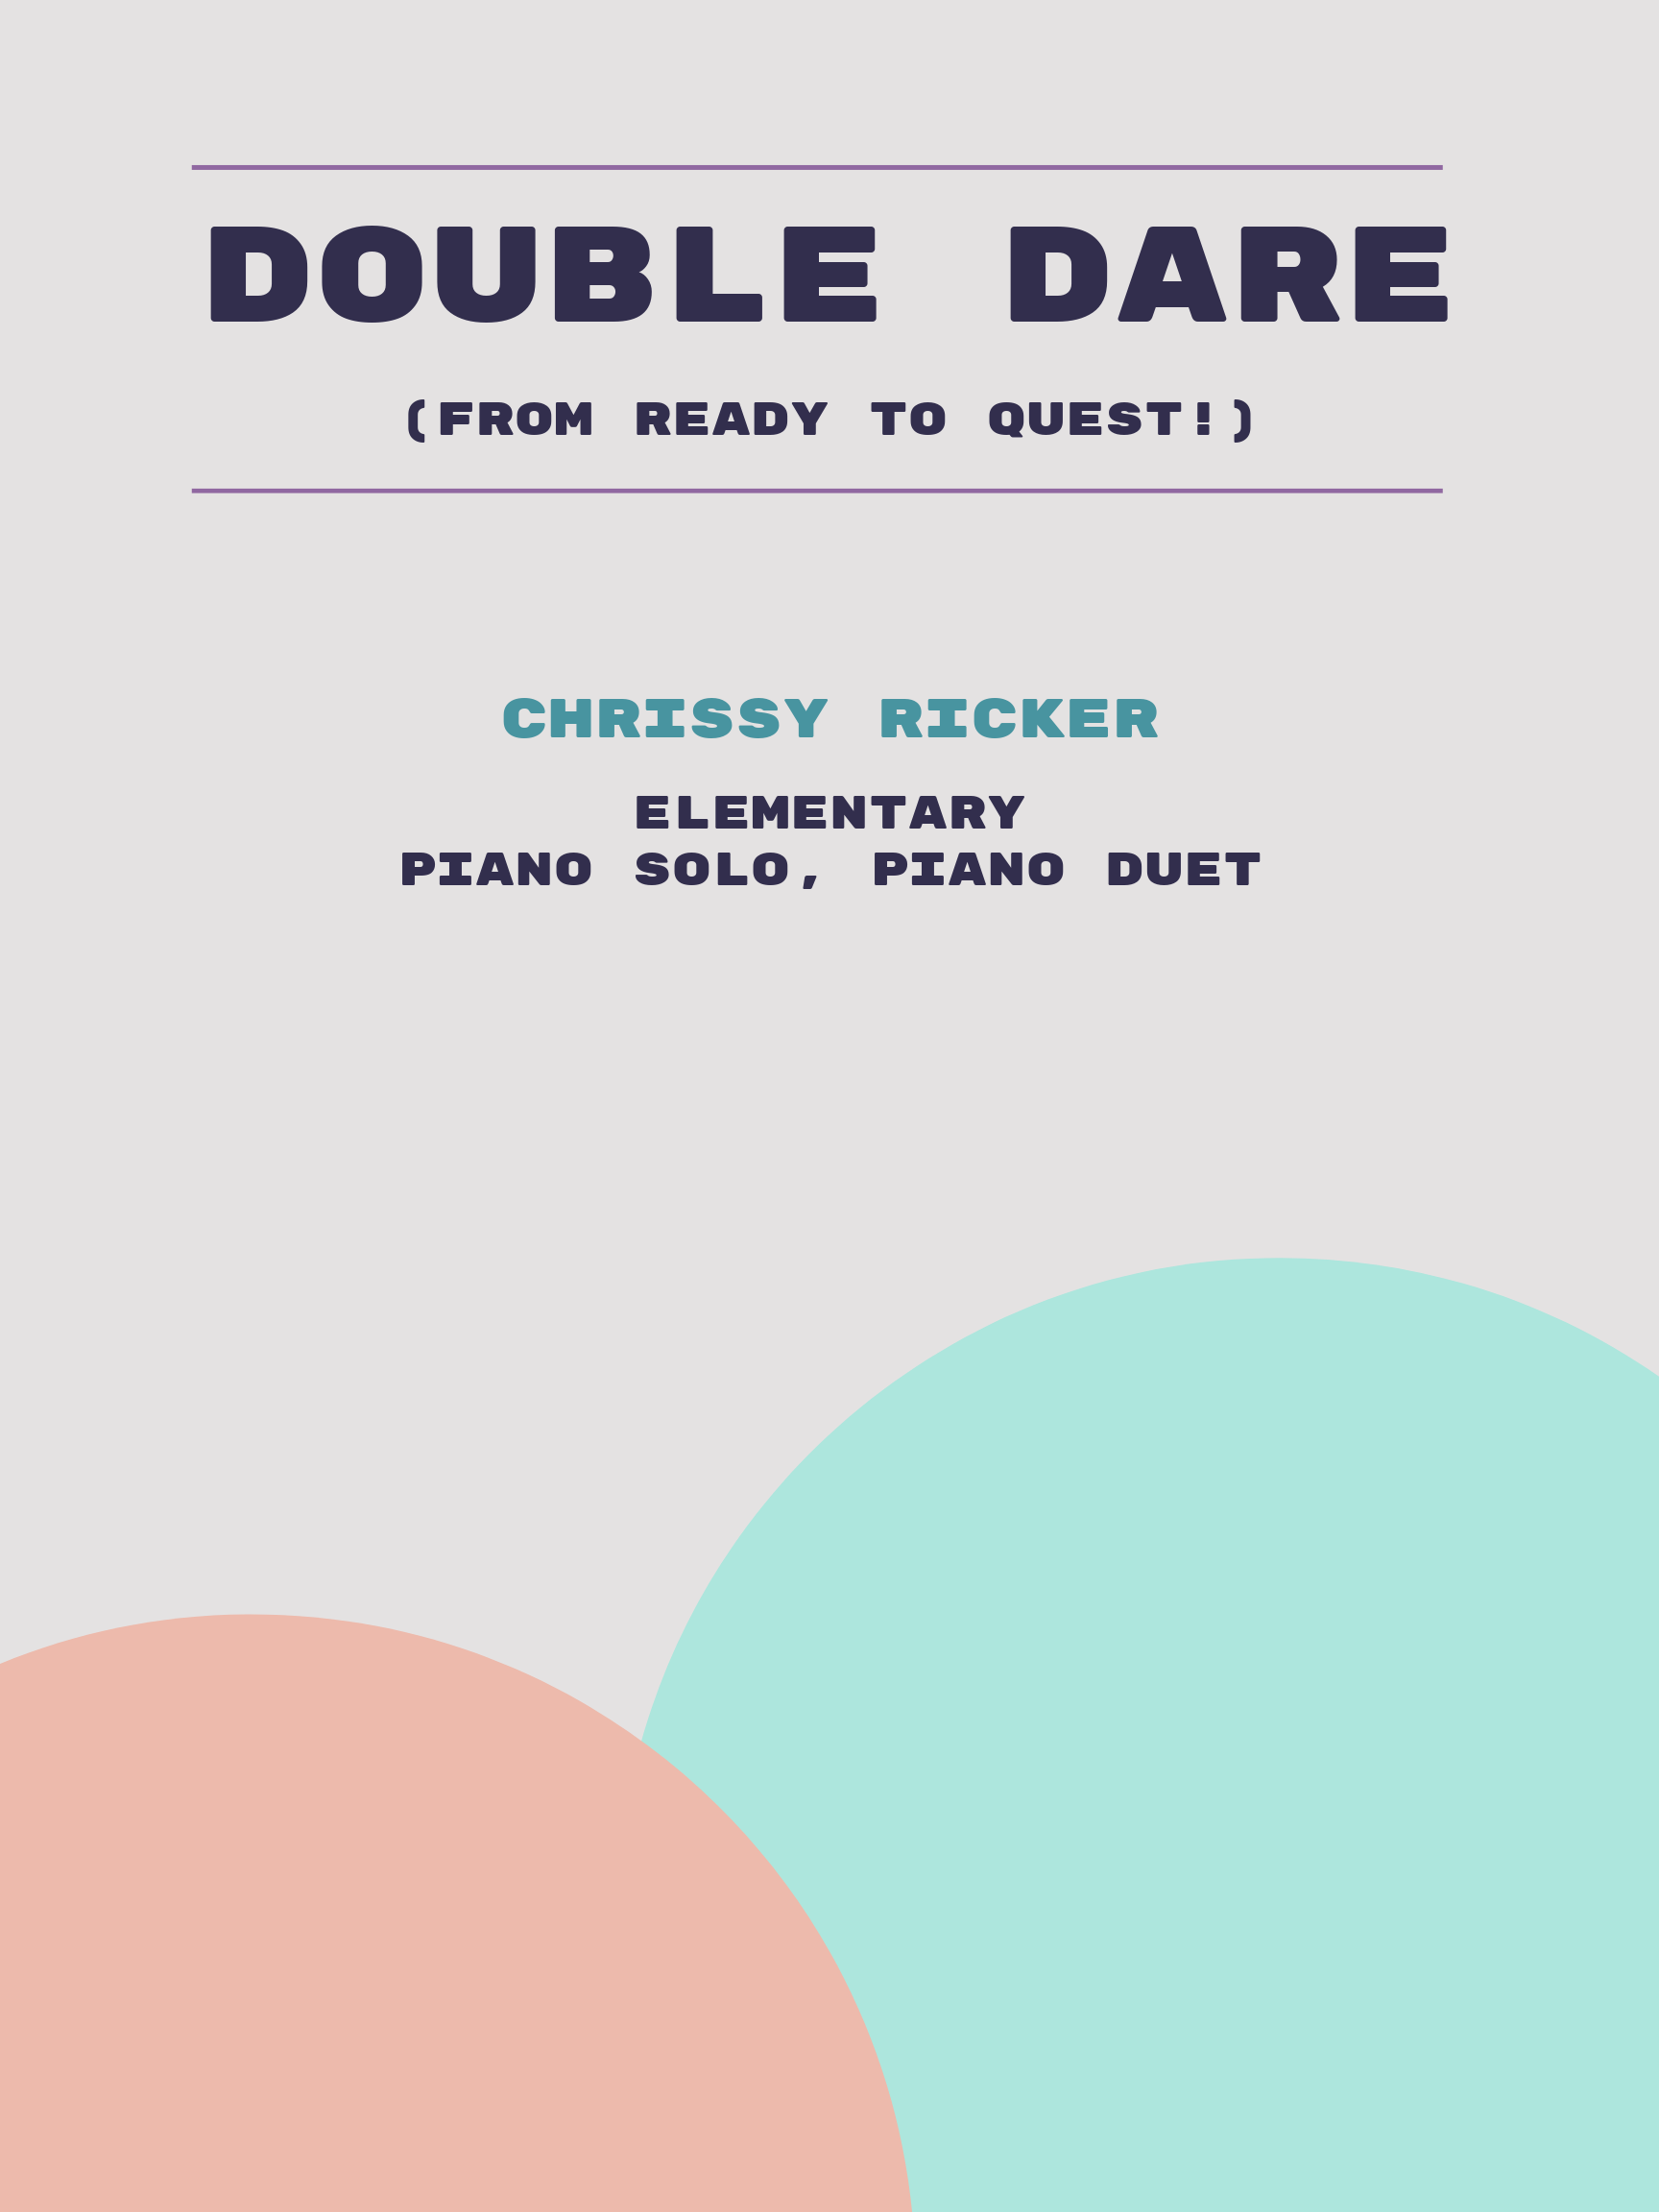 Double Dare by Chrissy Ricker